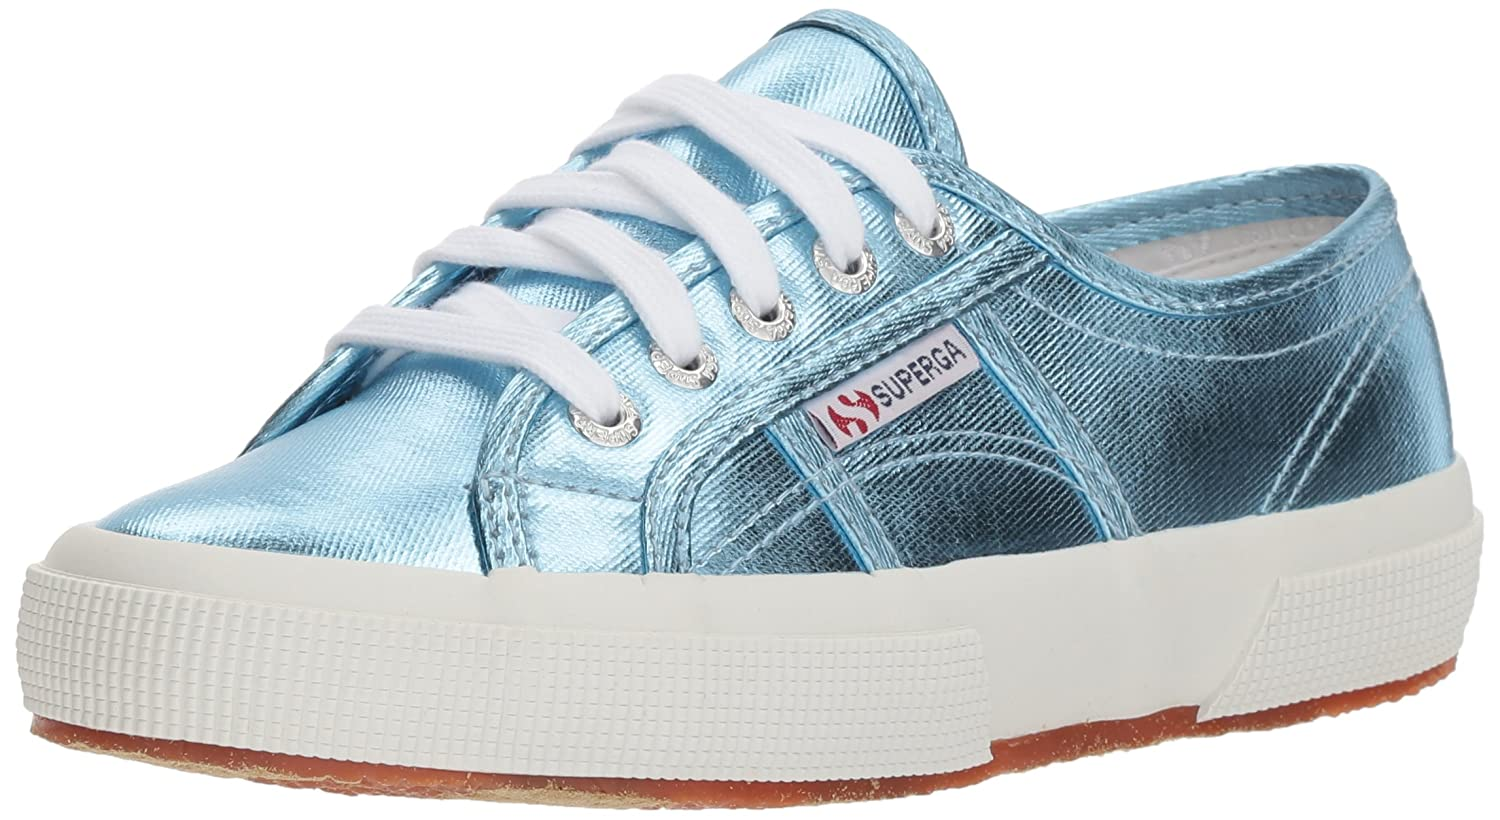 Superga Women's 2750 Cotu Metaliic Sneaker B0777NYTW4 39 M EU (8 US)|Light Blue